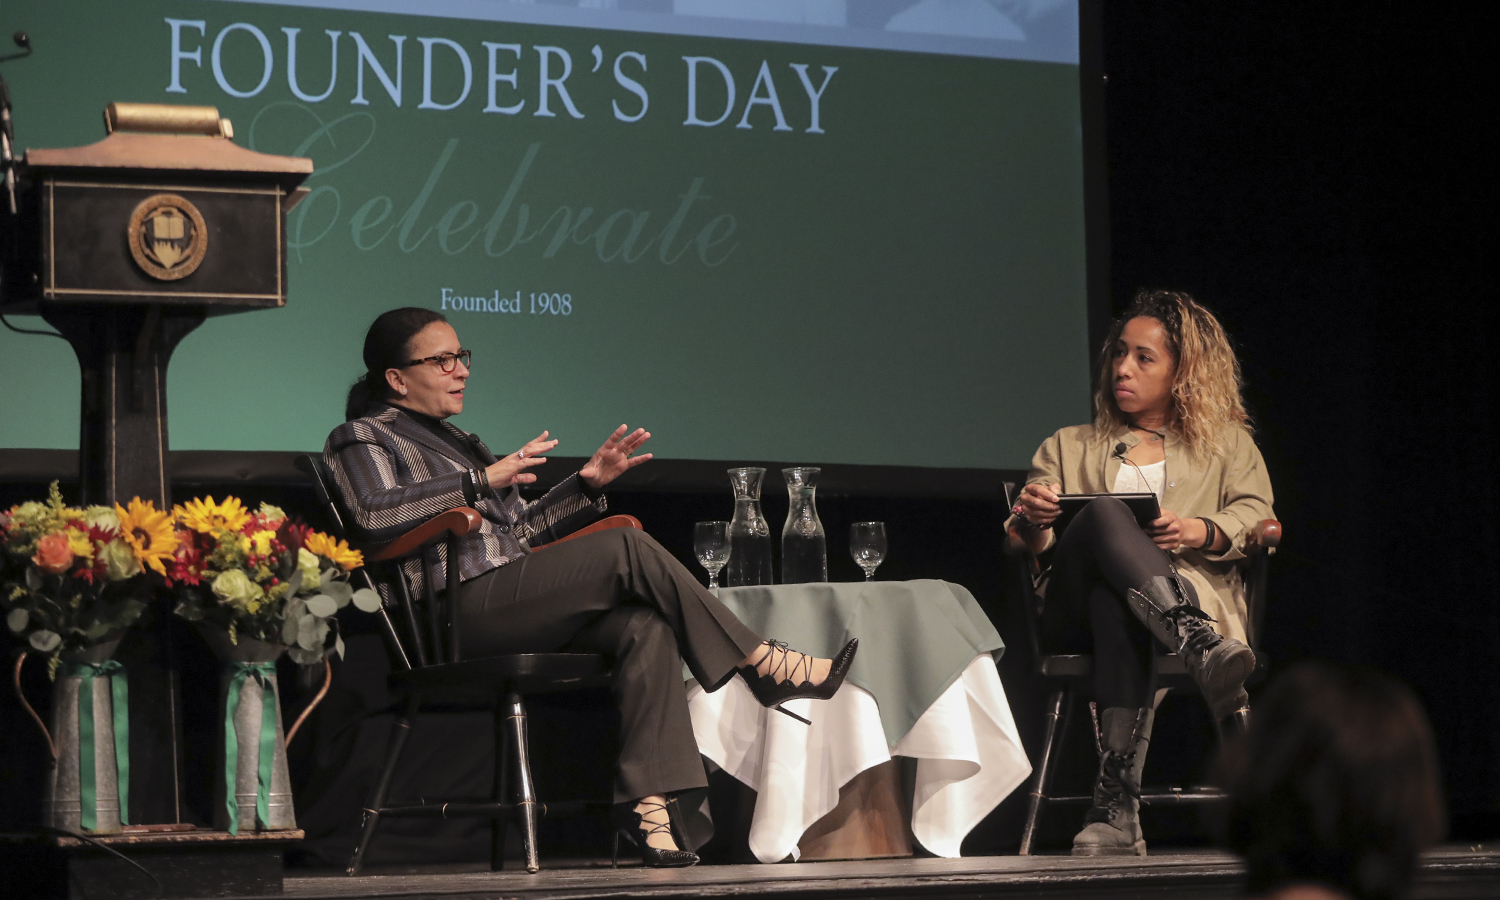 As part of the Founder's Day celebration in Bartlett Theatre, Chrysa Chin '84, an executive vice president with the National Basketball Players Association, has an on-stage conversation with Kendra Quinn-Moultrie '18, an All-Academic forward on the Herons basketball team.